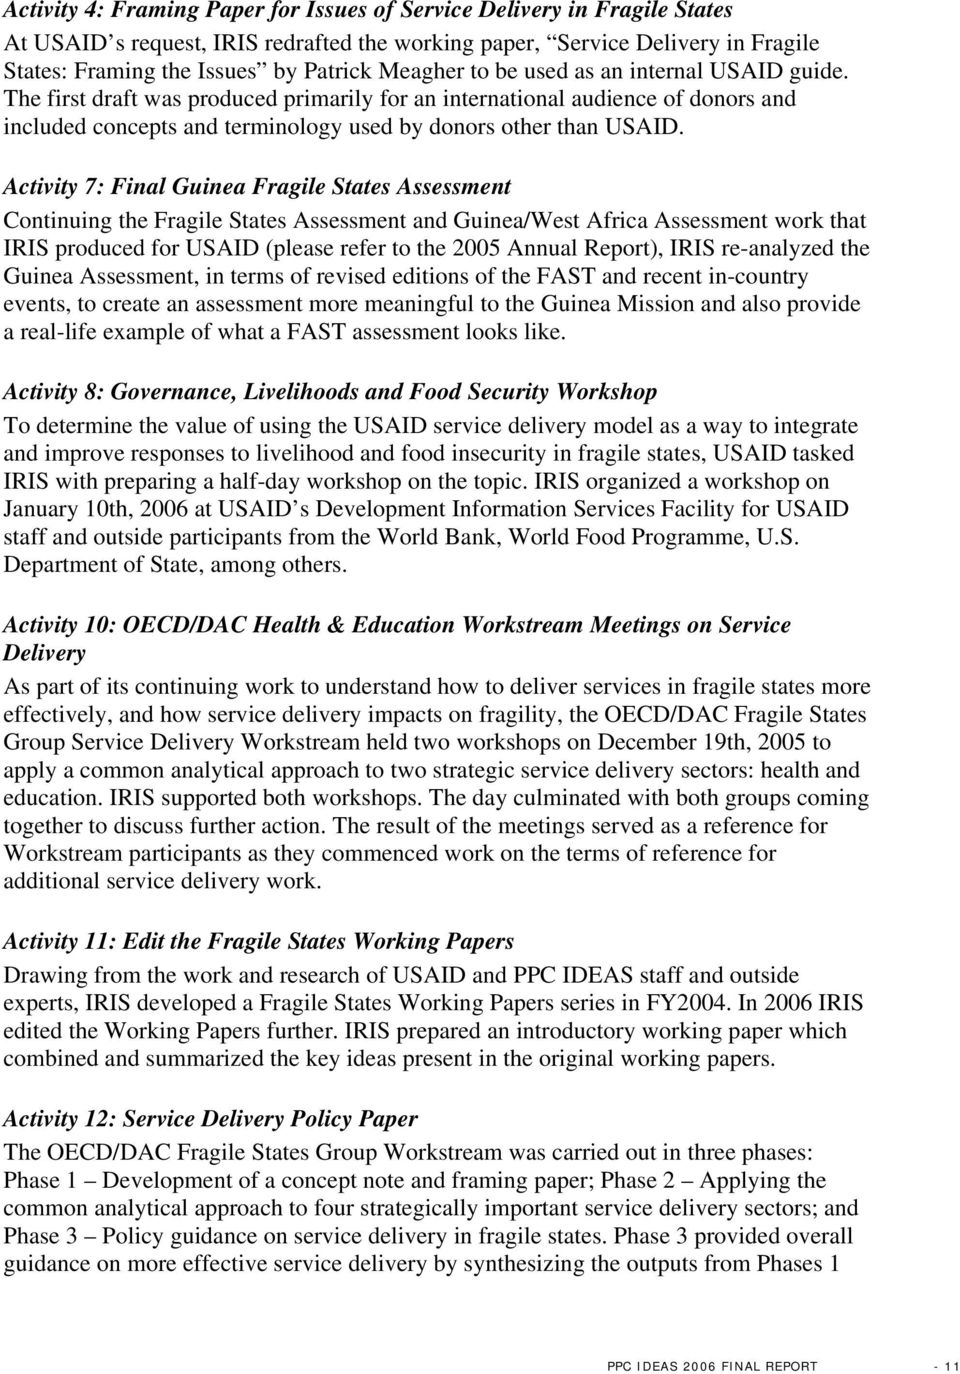 Activity 7: Final Guinea Fragile States Assessment Continuing the Fragile States Assessment and Guinea/West Africa Assessment work that IRIS produced for USAID (please refer to the 2005 Annual